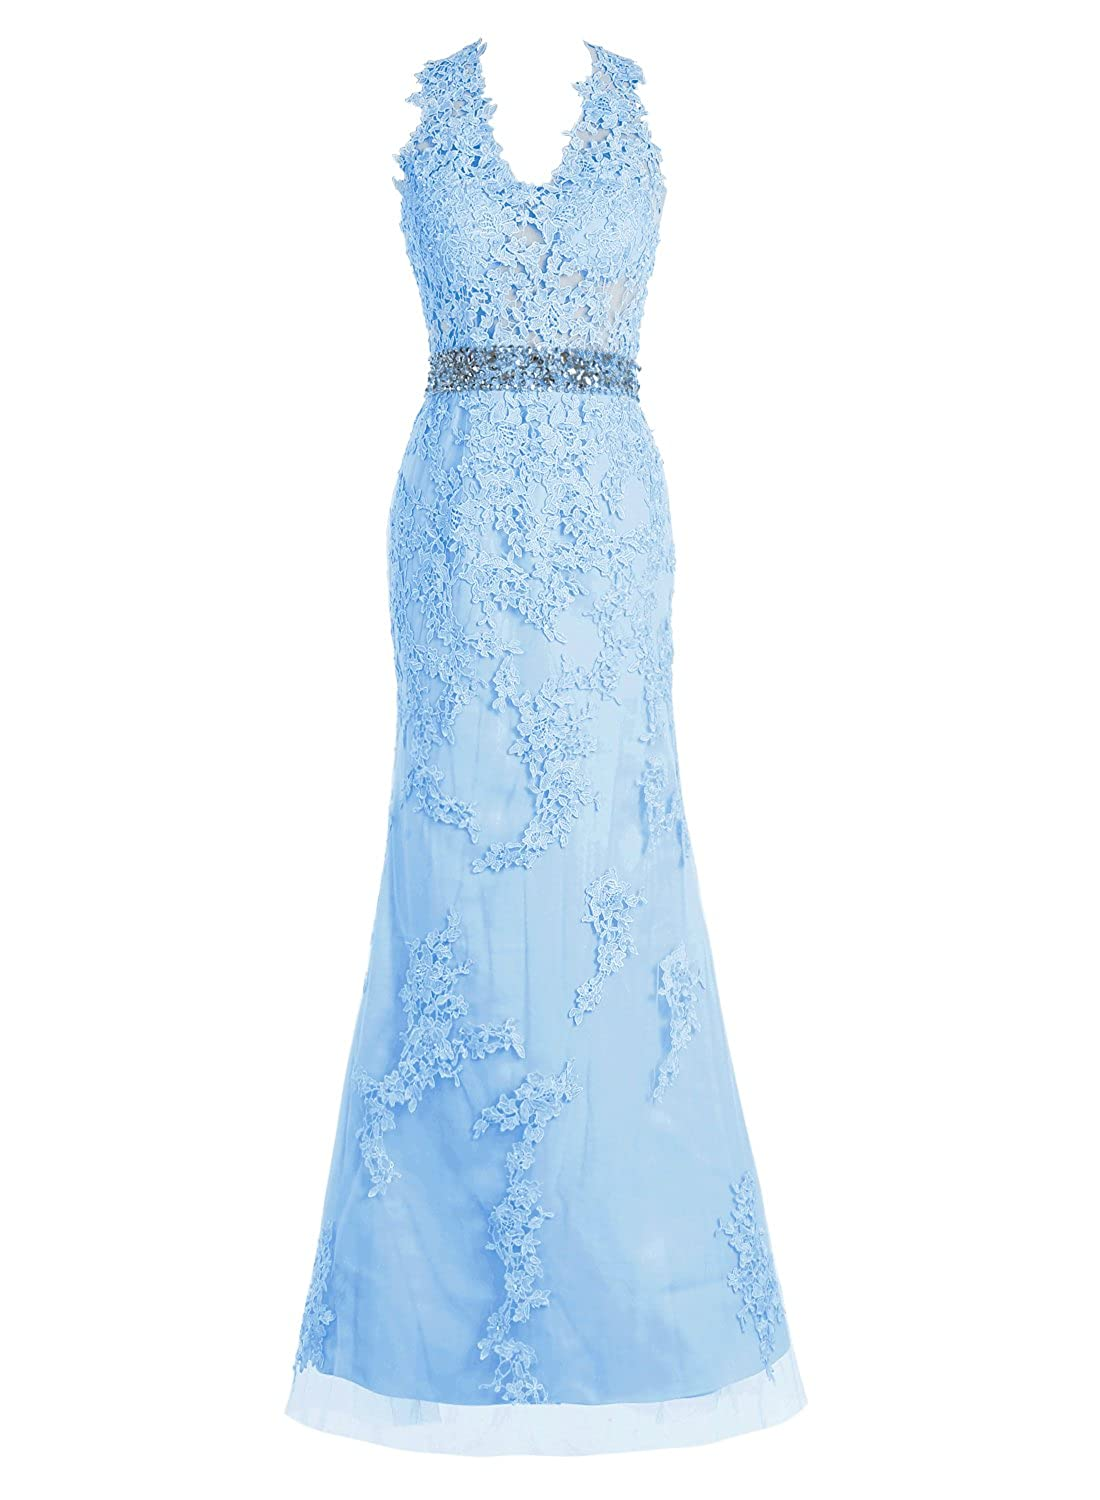 Bbonlinedress A Line Long Tulle Prom Dress Full of Lace Evening Party Dresss